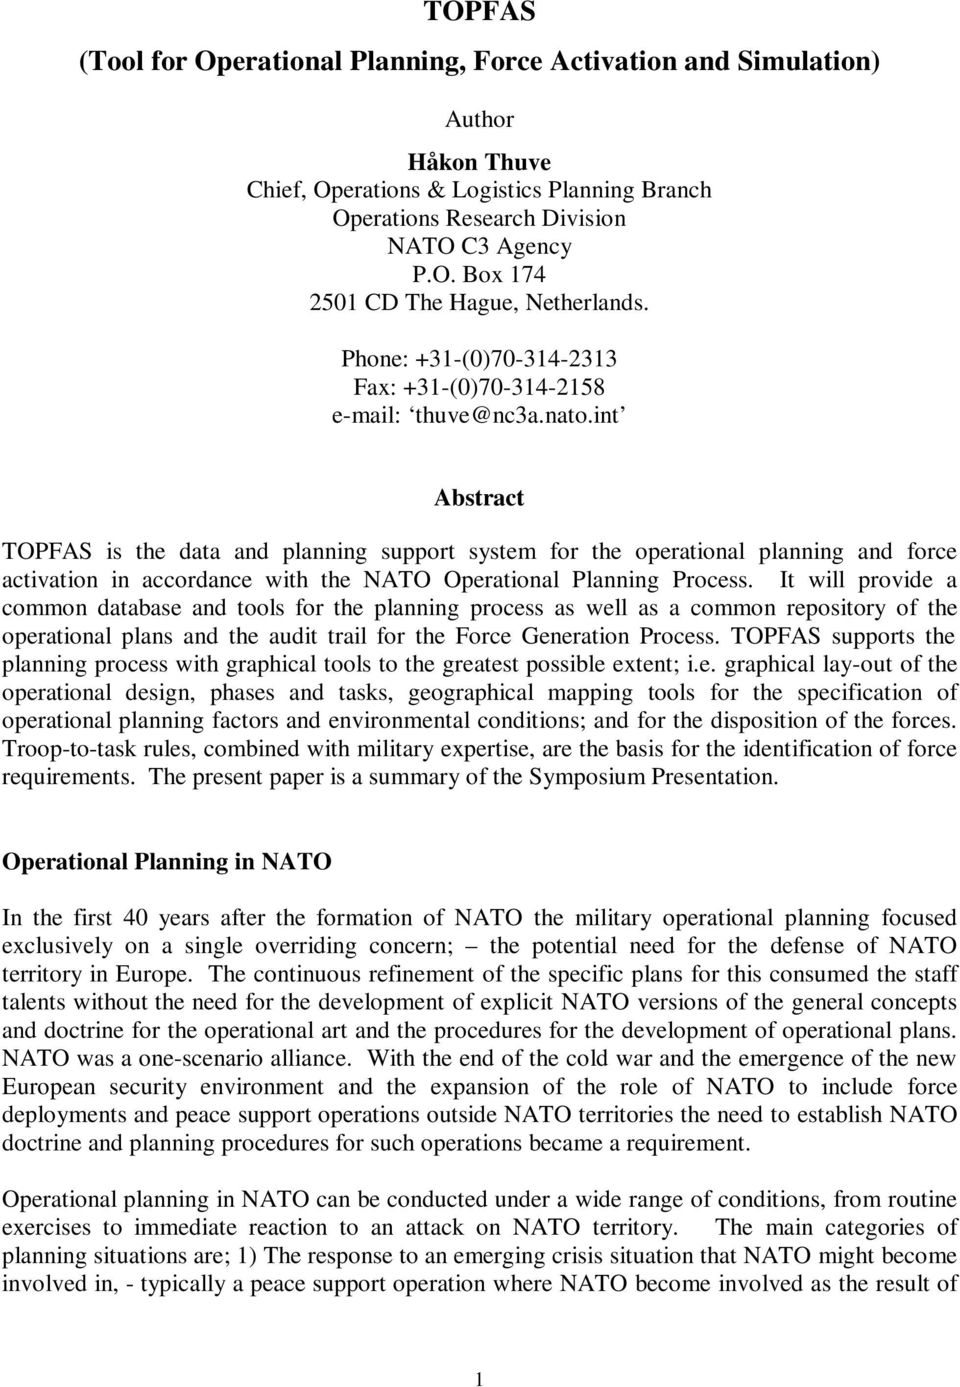 TOPFAS (Tool for Operational Planning, Force Activation and